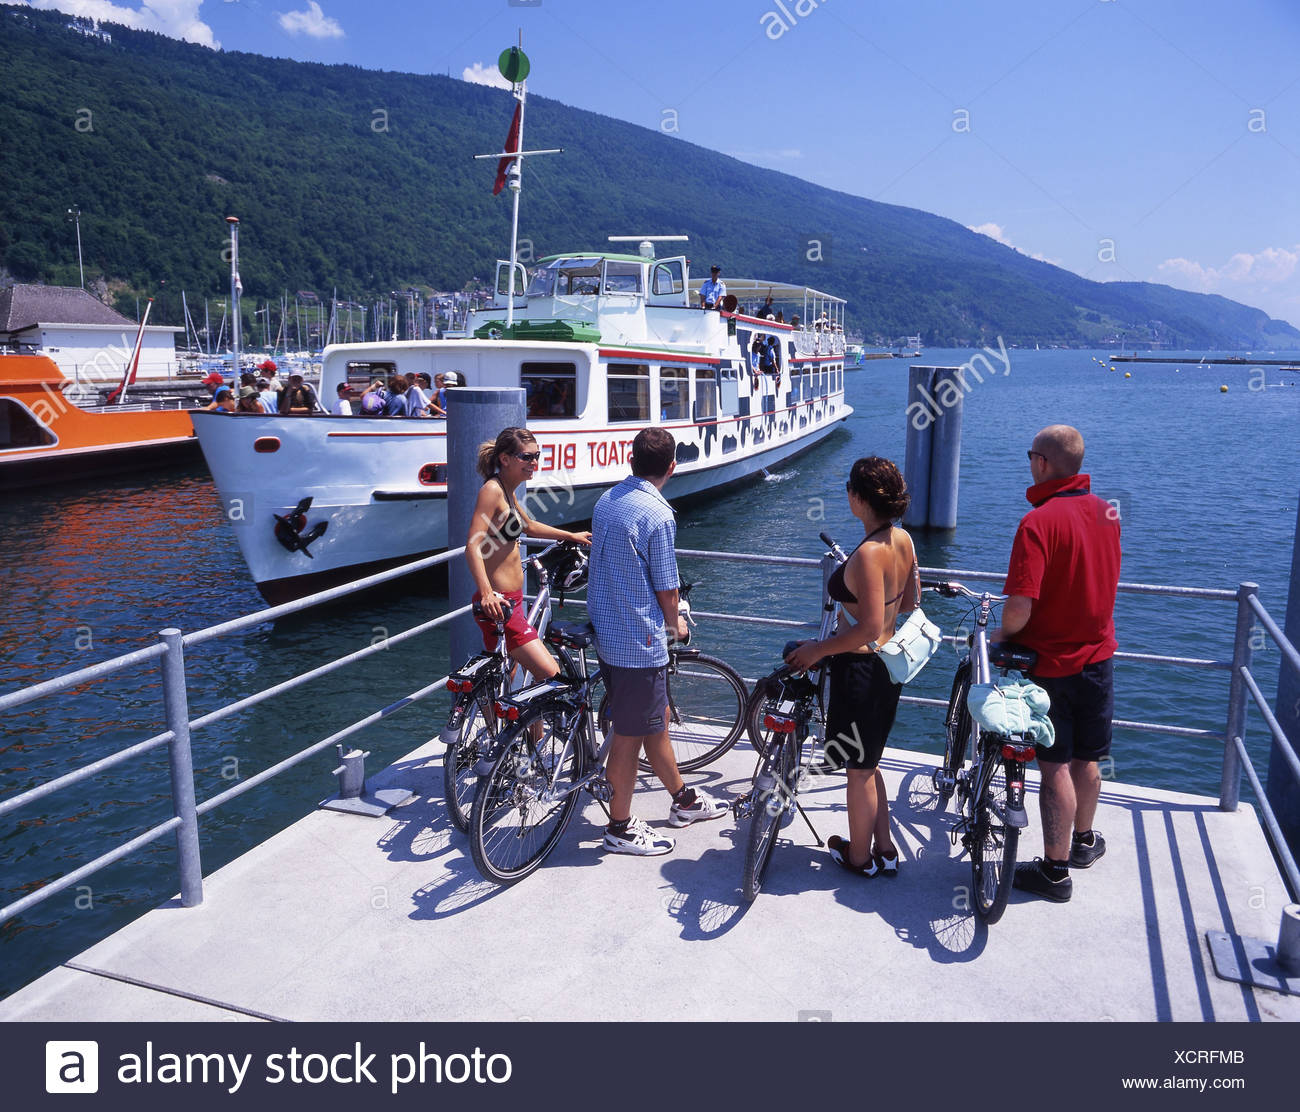 Canton Bern bicycle Biel Bielersee Lake Biel bike canton excursion group lake lakes passengers scenery - Stock Image